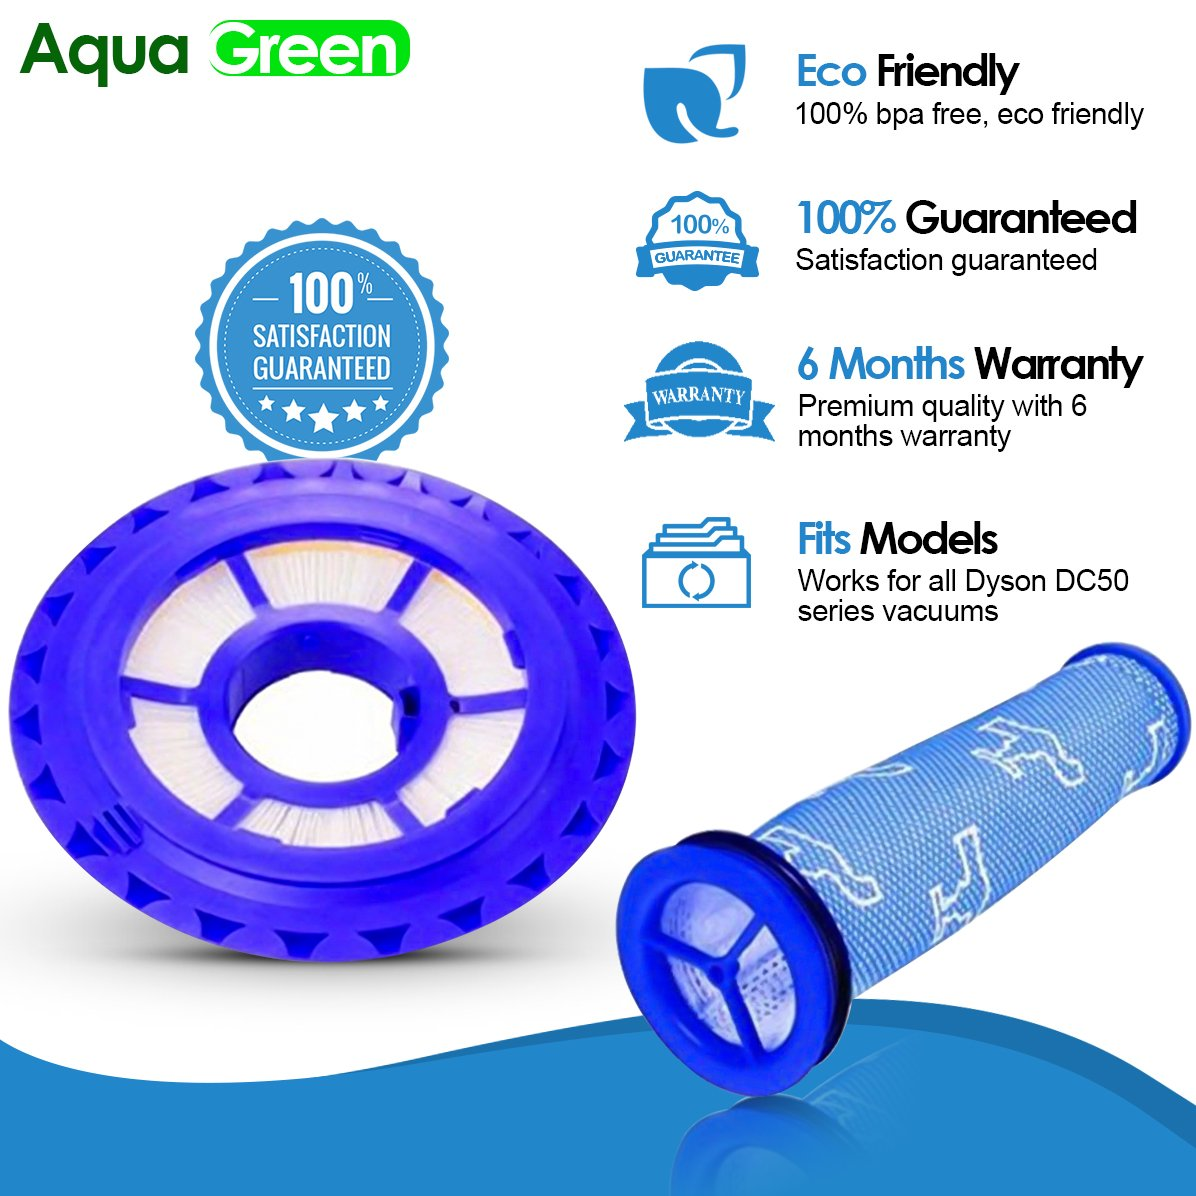 AQUA GREEN Replacement Dyson DC50 Compatible Hepa Post Filter & Washable Pre Filter Kit - for Animal and Multi Floor Vacuum Part #965081-01